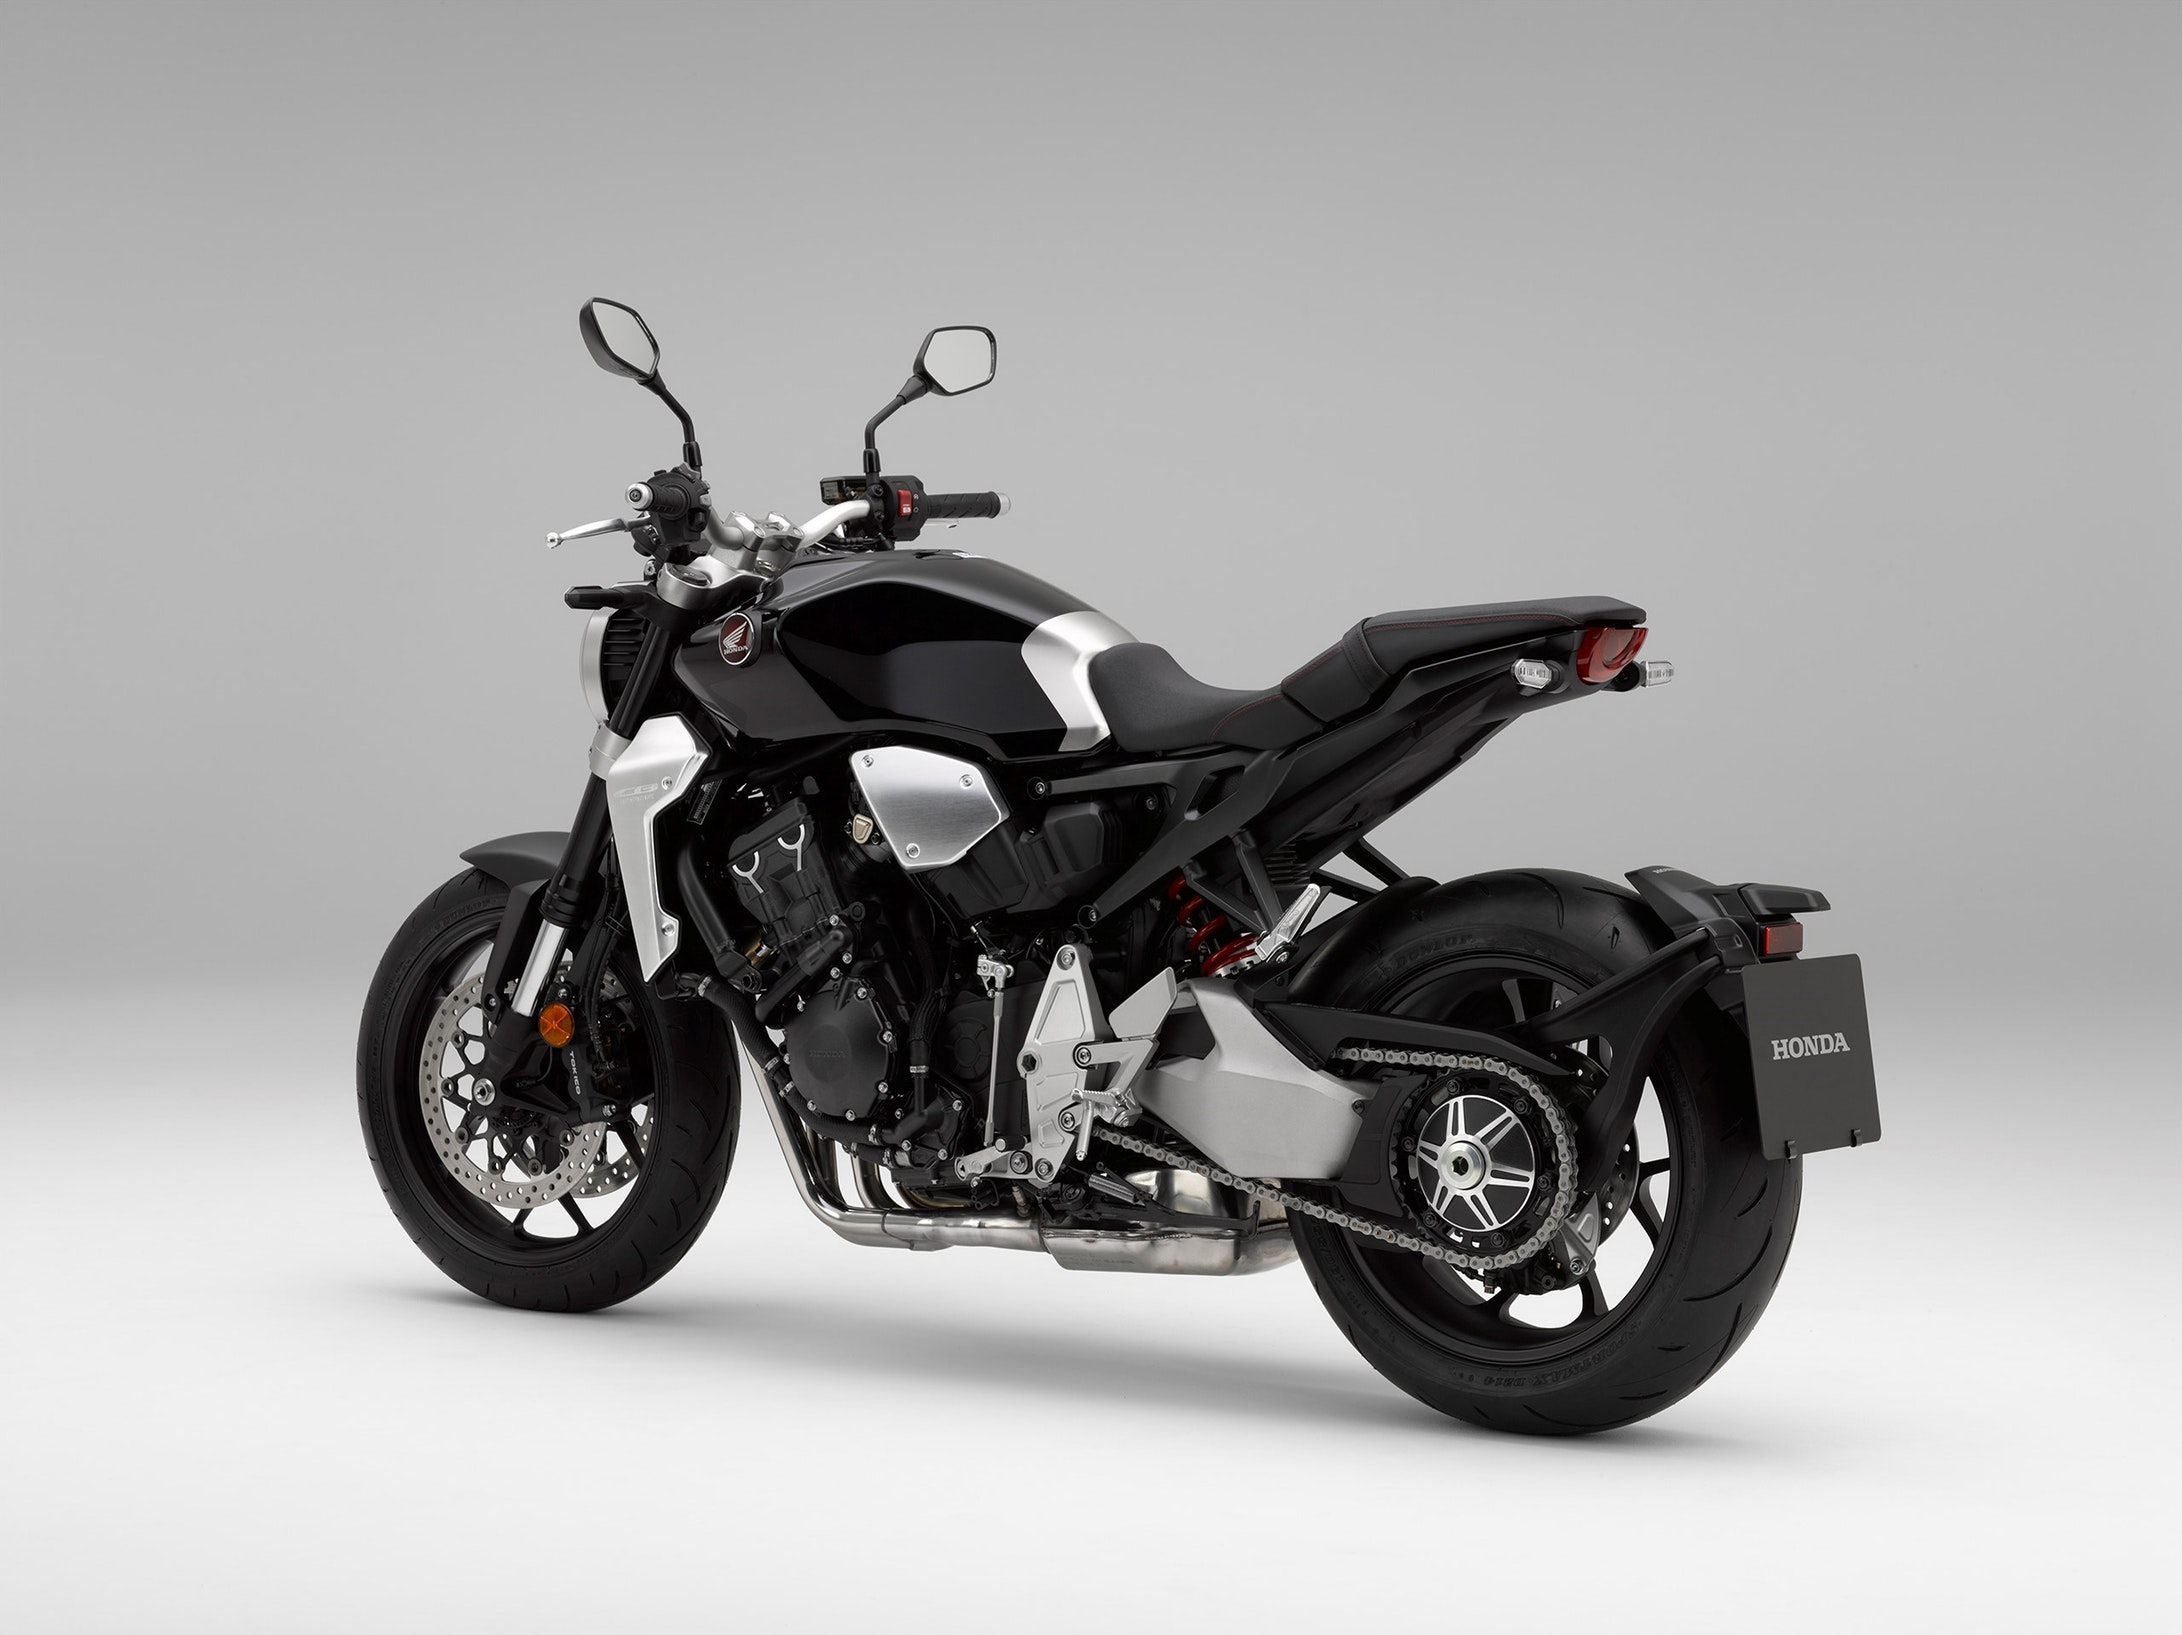 honda cb1000r specs 2018 autoevolution. Black Bedroom Furniture Sets. Home Design Ideas